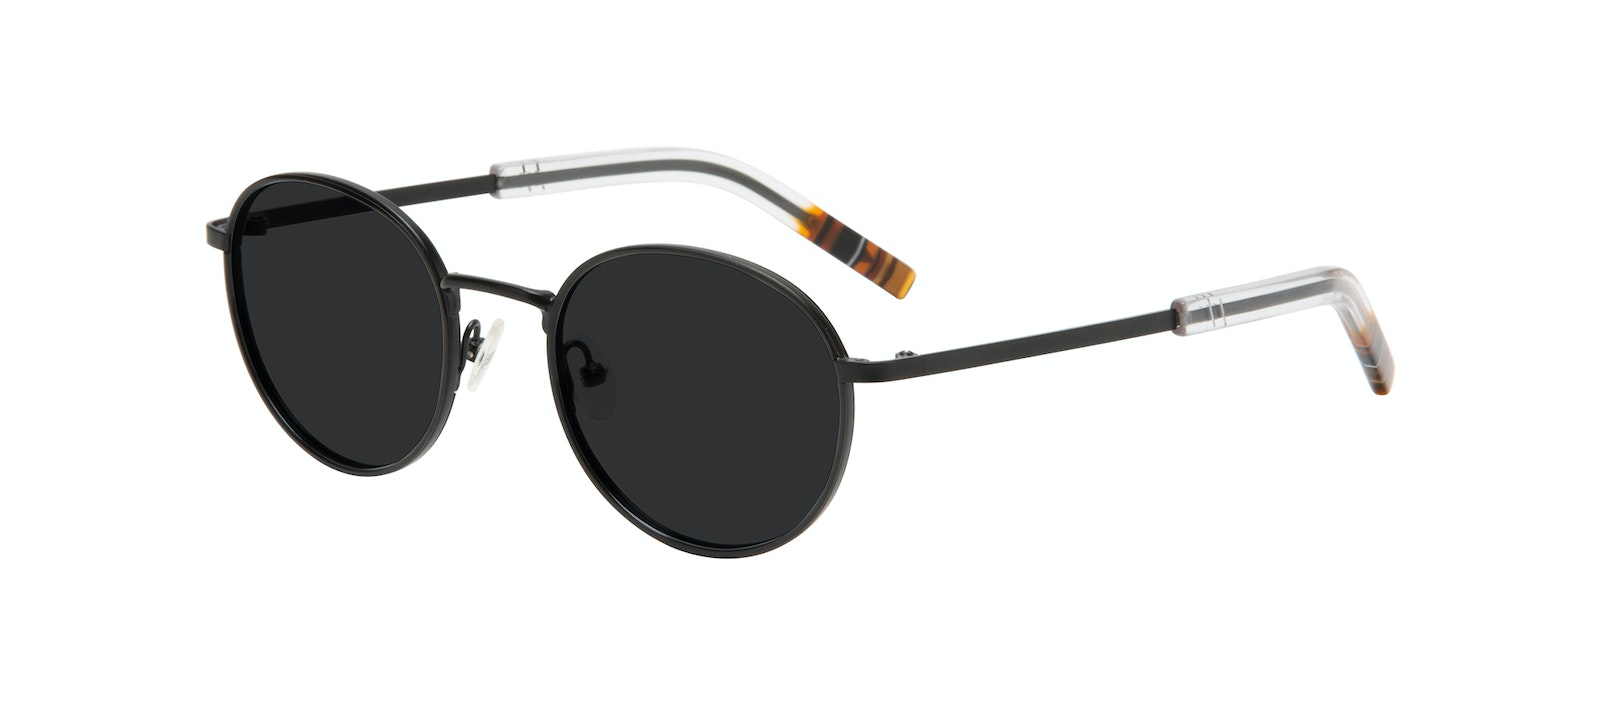 Affordable Fashion Glasses Round Sunglasses Men Reach Matte Black Tilt